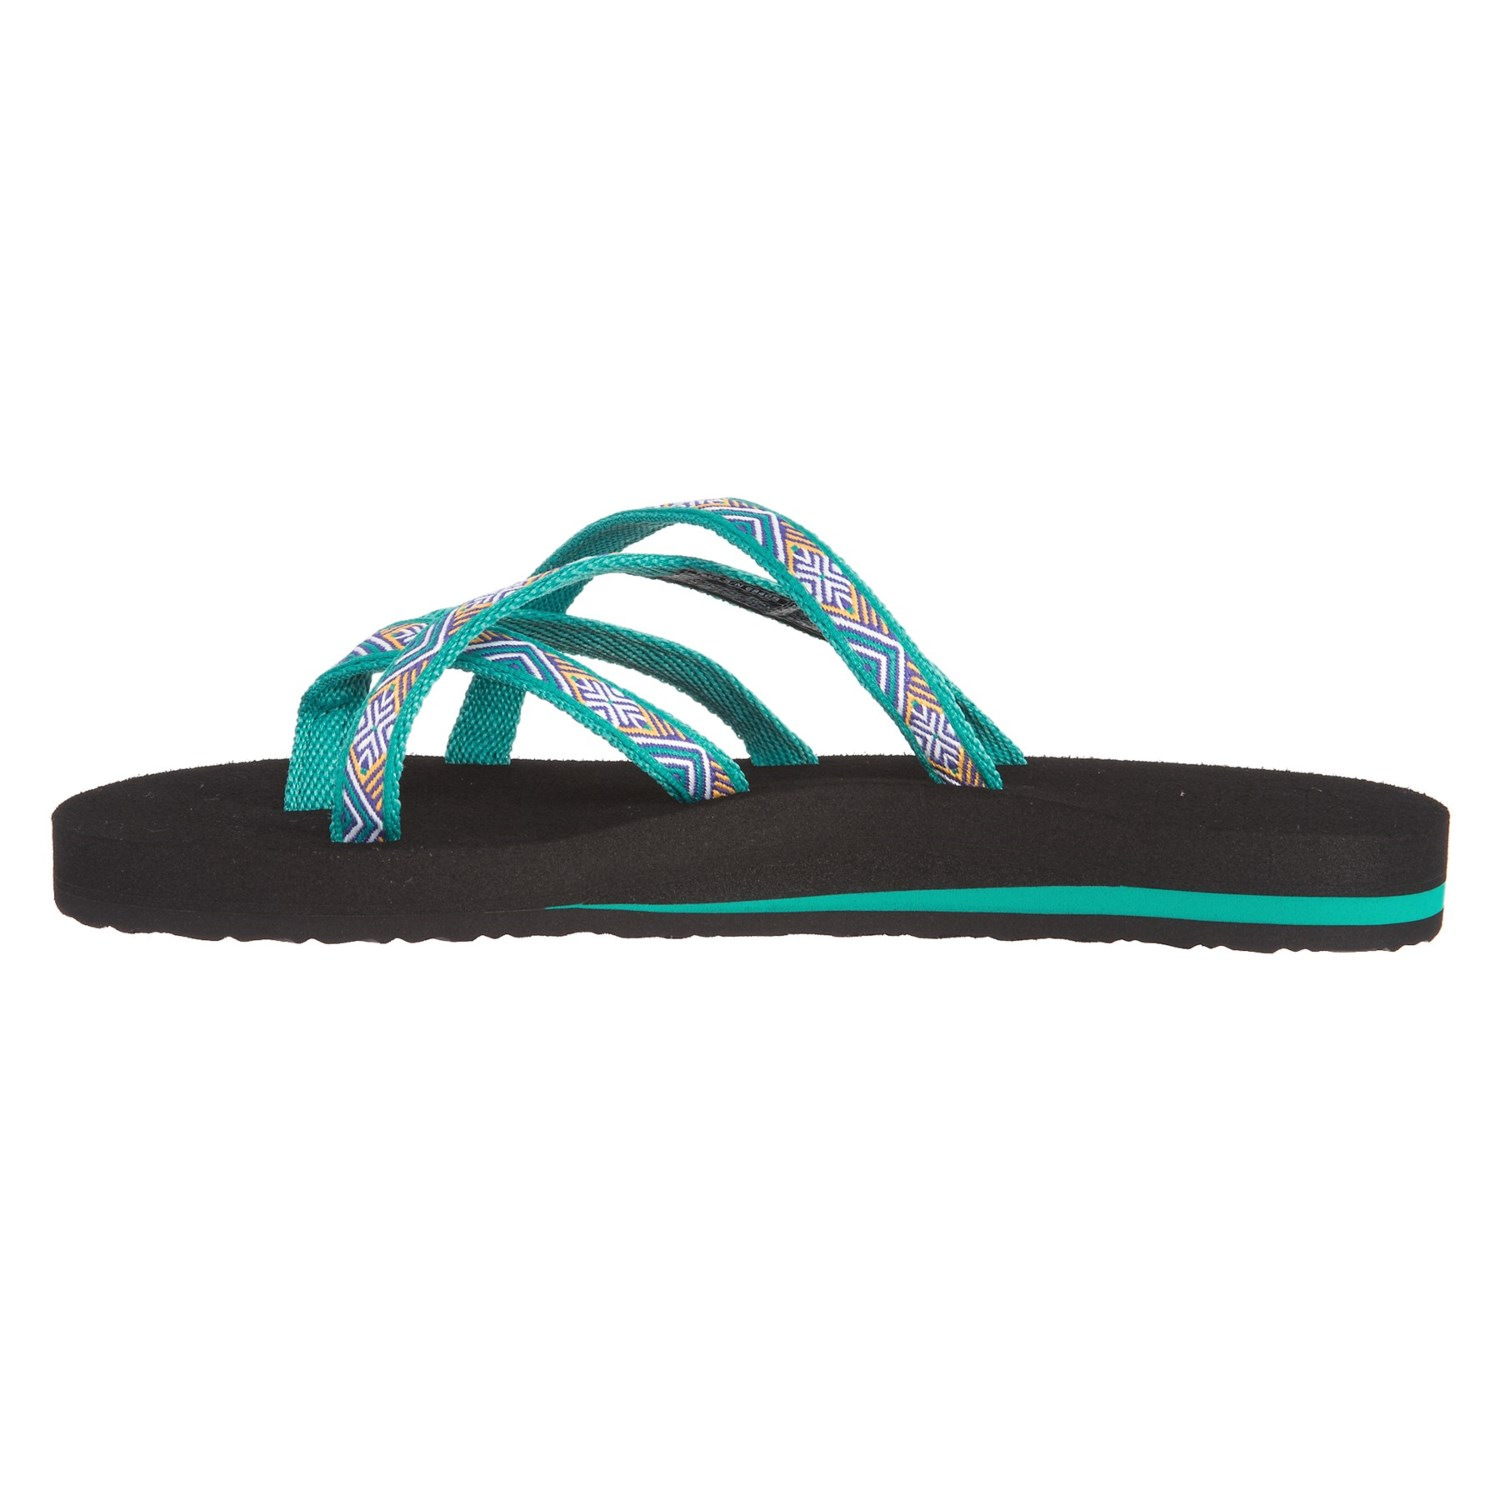 232c24bd1 Teva Olowahu Flip-Flops (For Women) - Save 35%